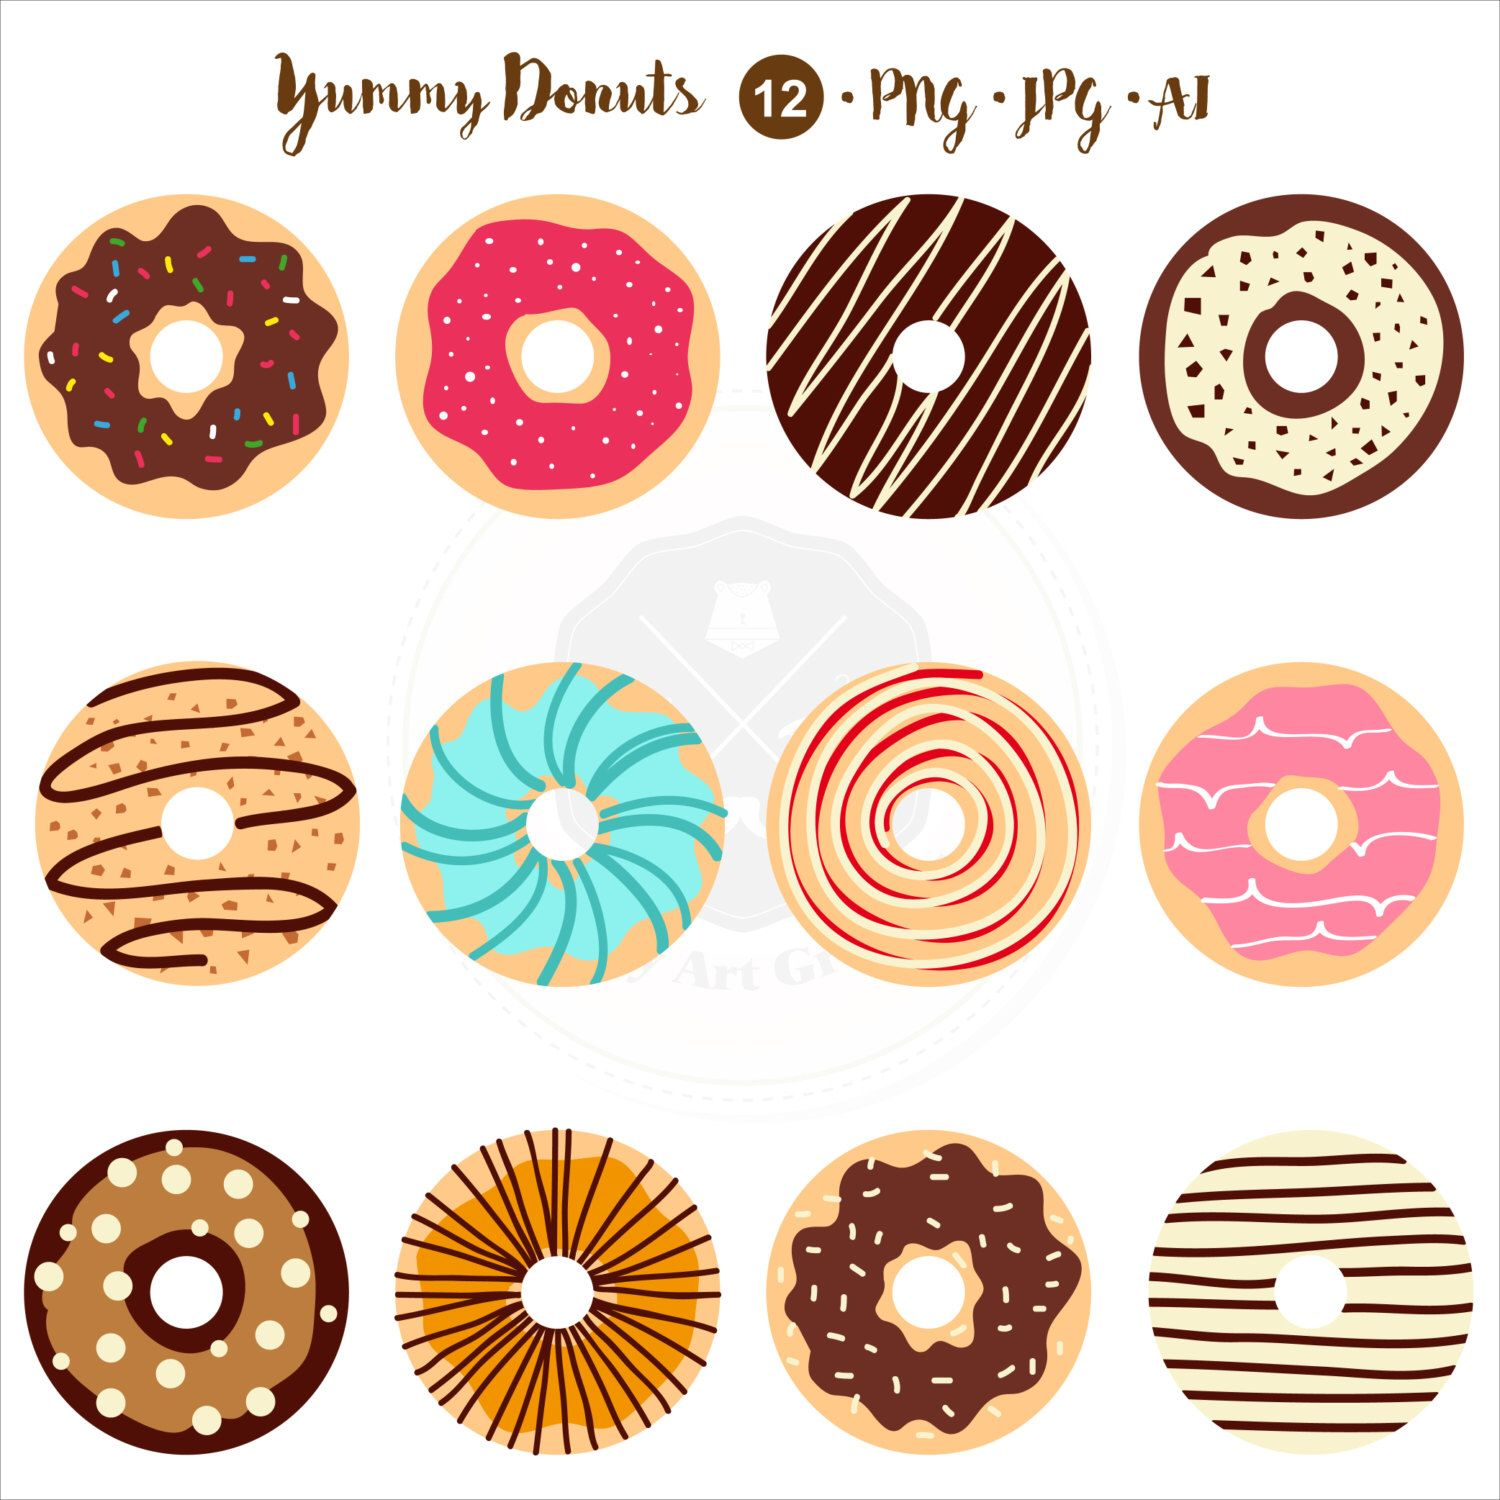 Yummy Donuts Clipart,food clipart,tea time clipart,donuts ...